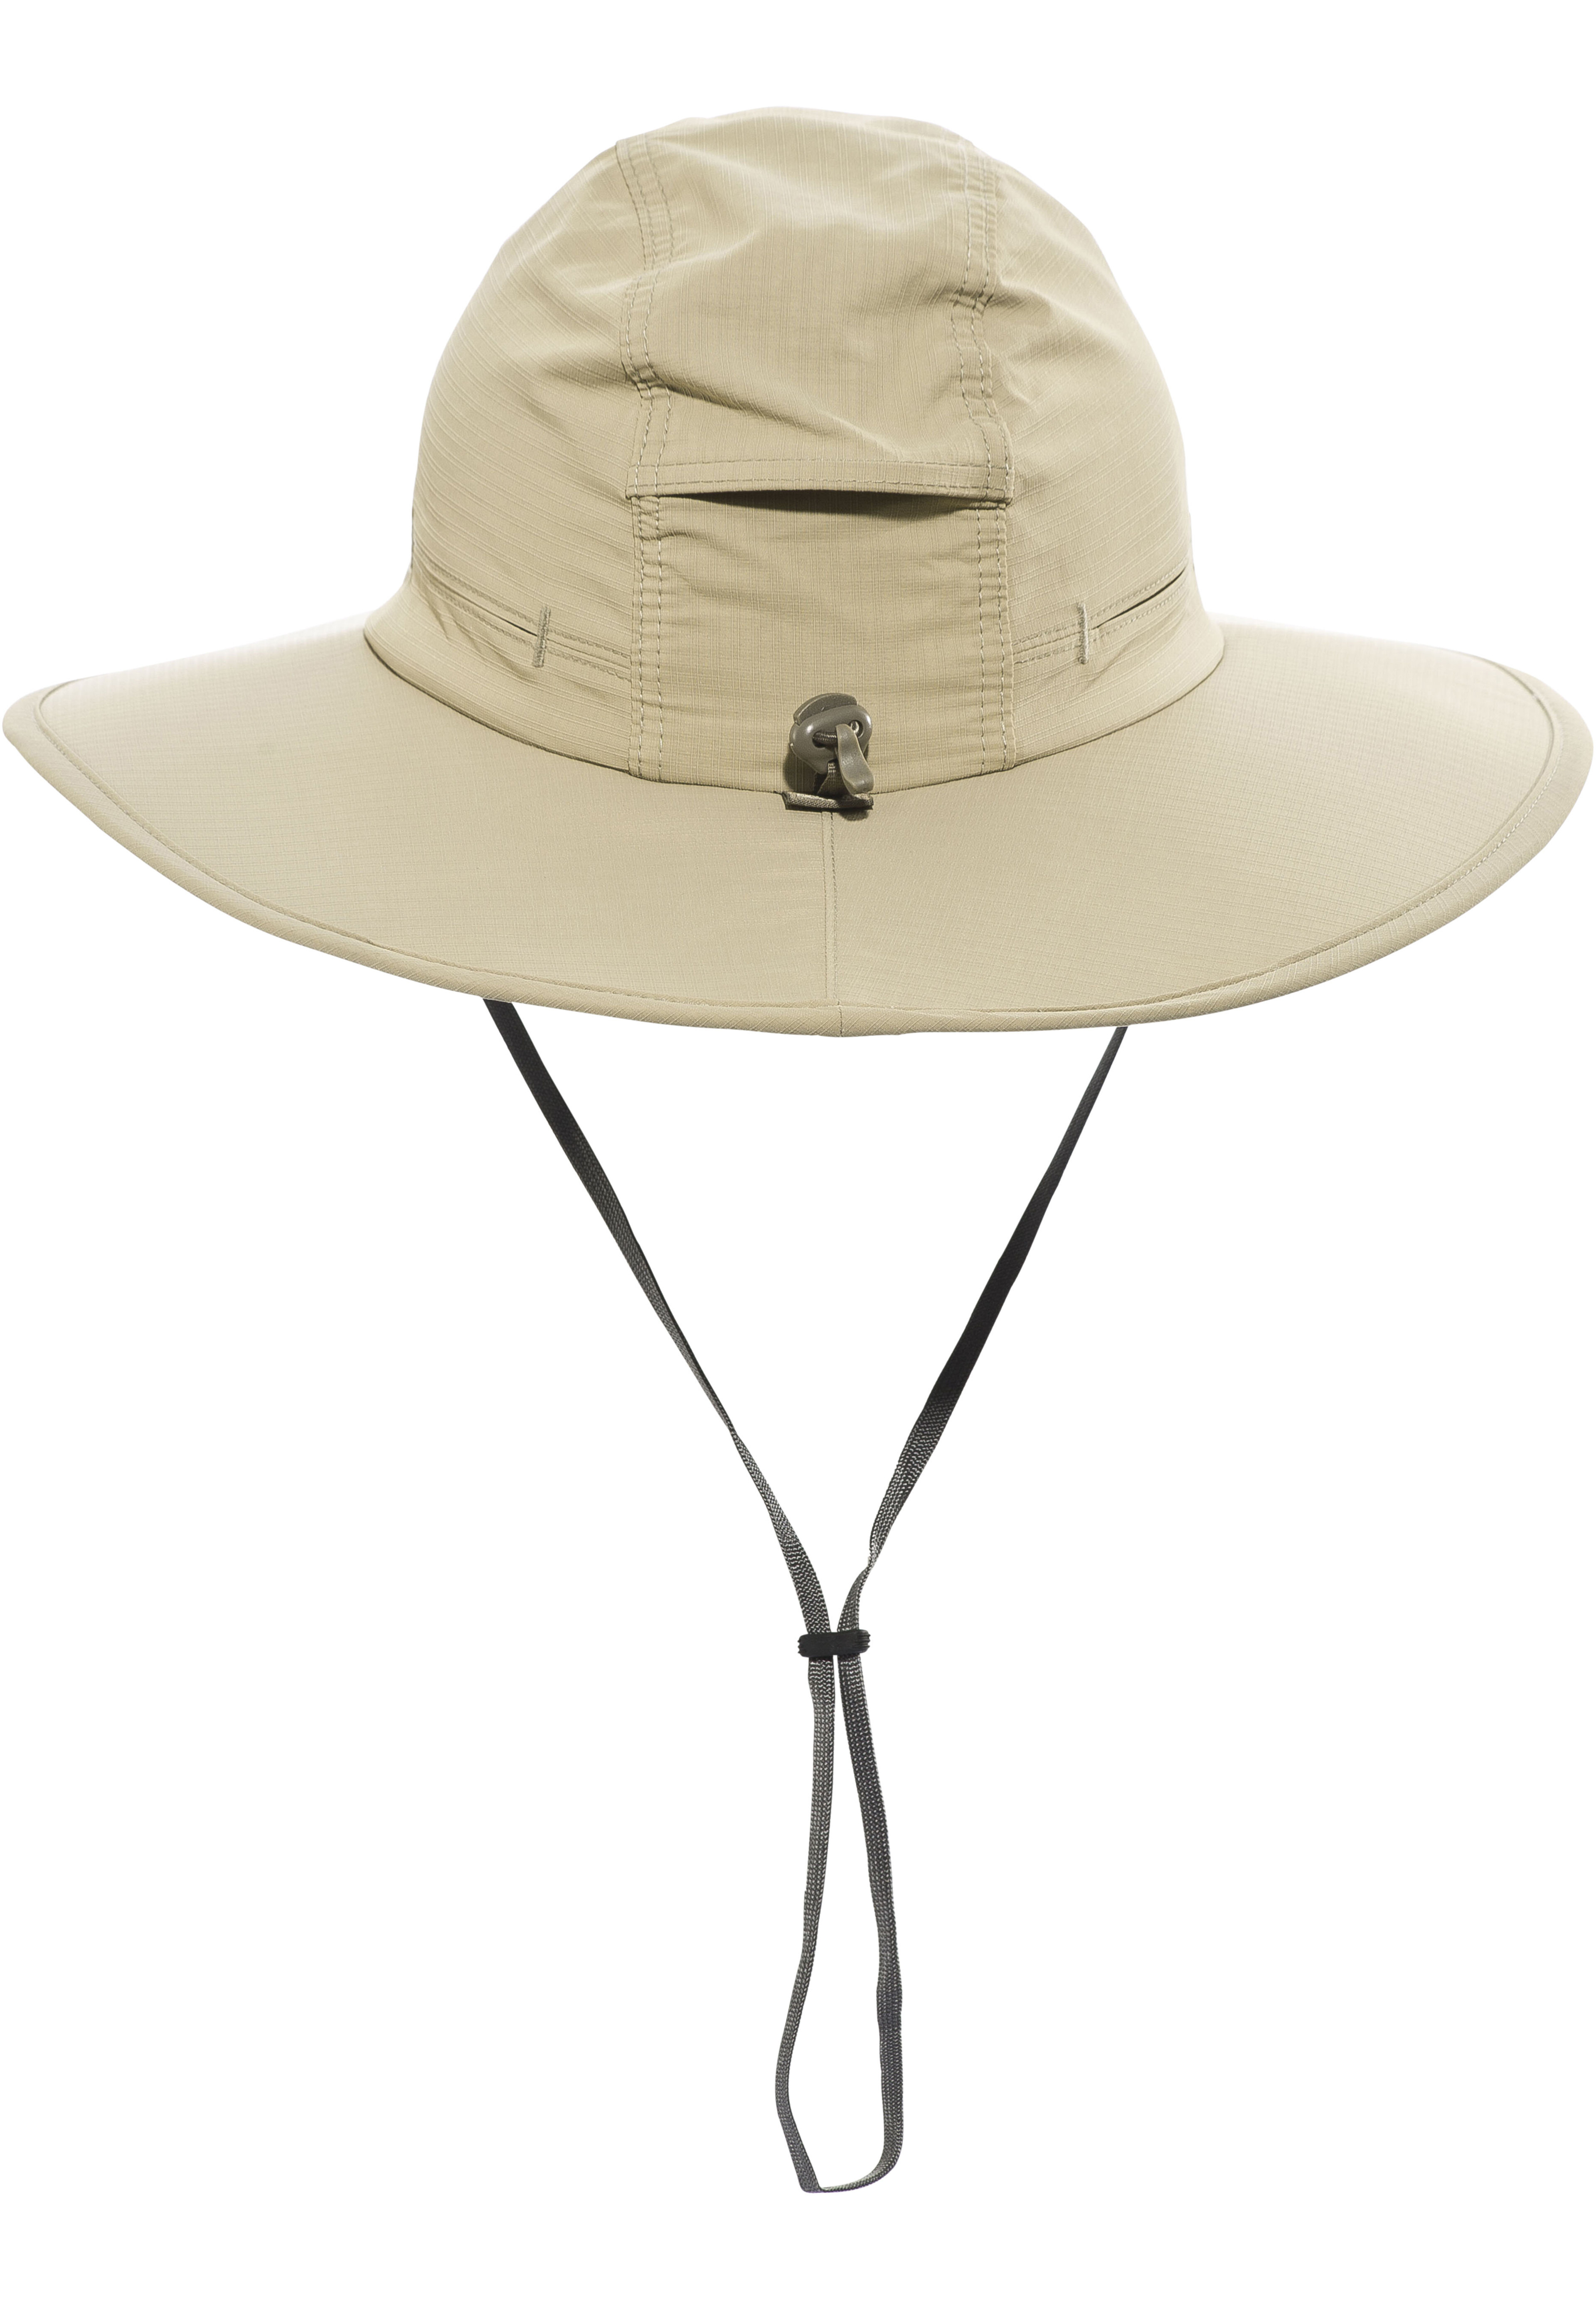 45836b19072 Outdoor Research Sombriolet Sun Hat khaki